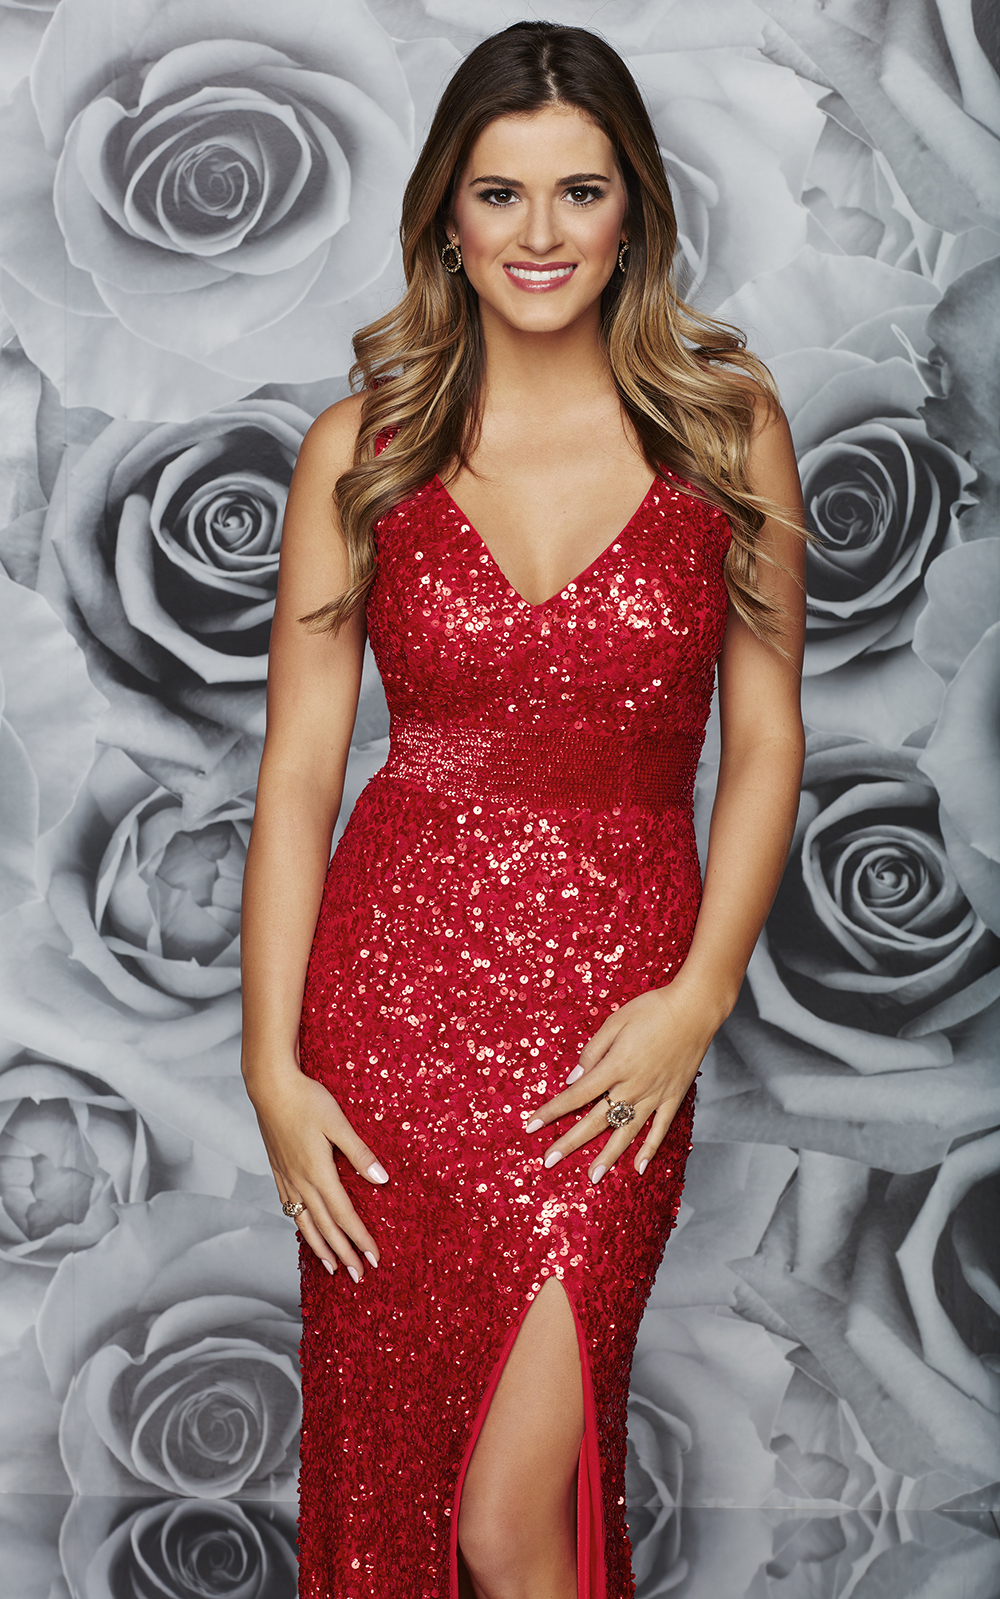 This Is What Happened When JoJo Fletcher Told Her Brothers She Was Going to Be the Next <em>Bachelorette</em>